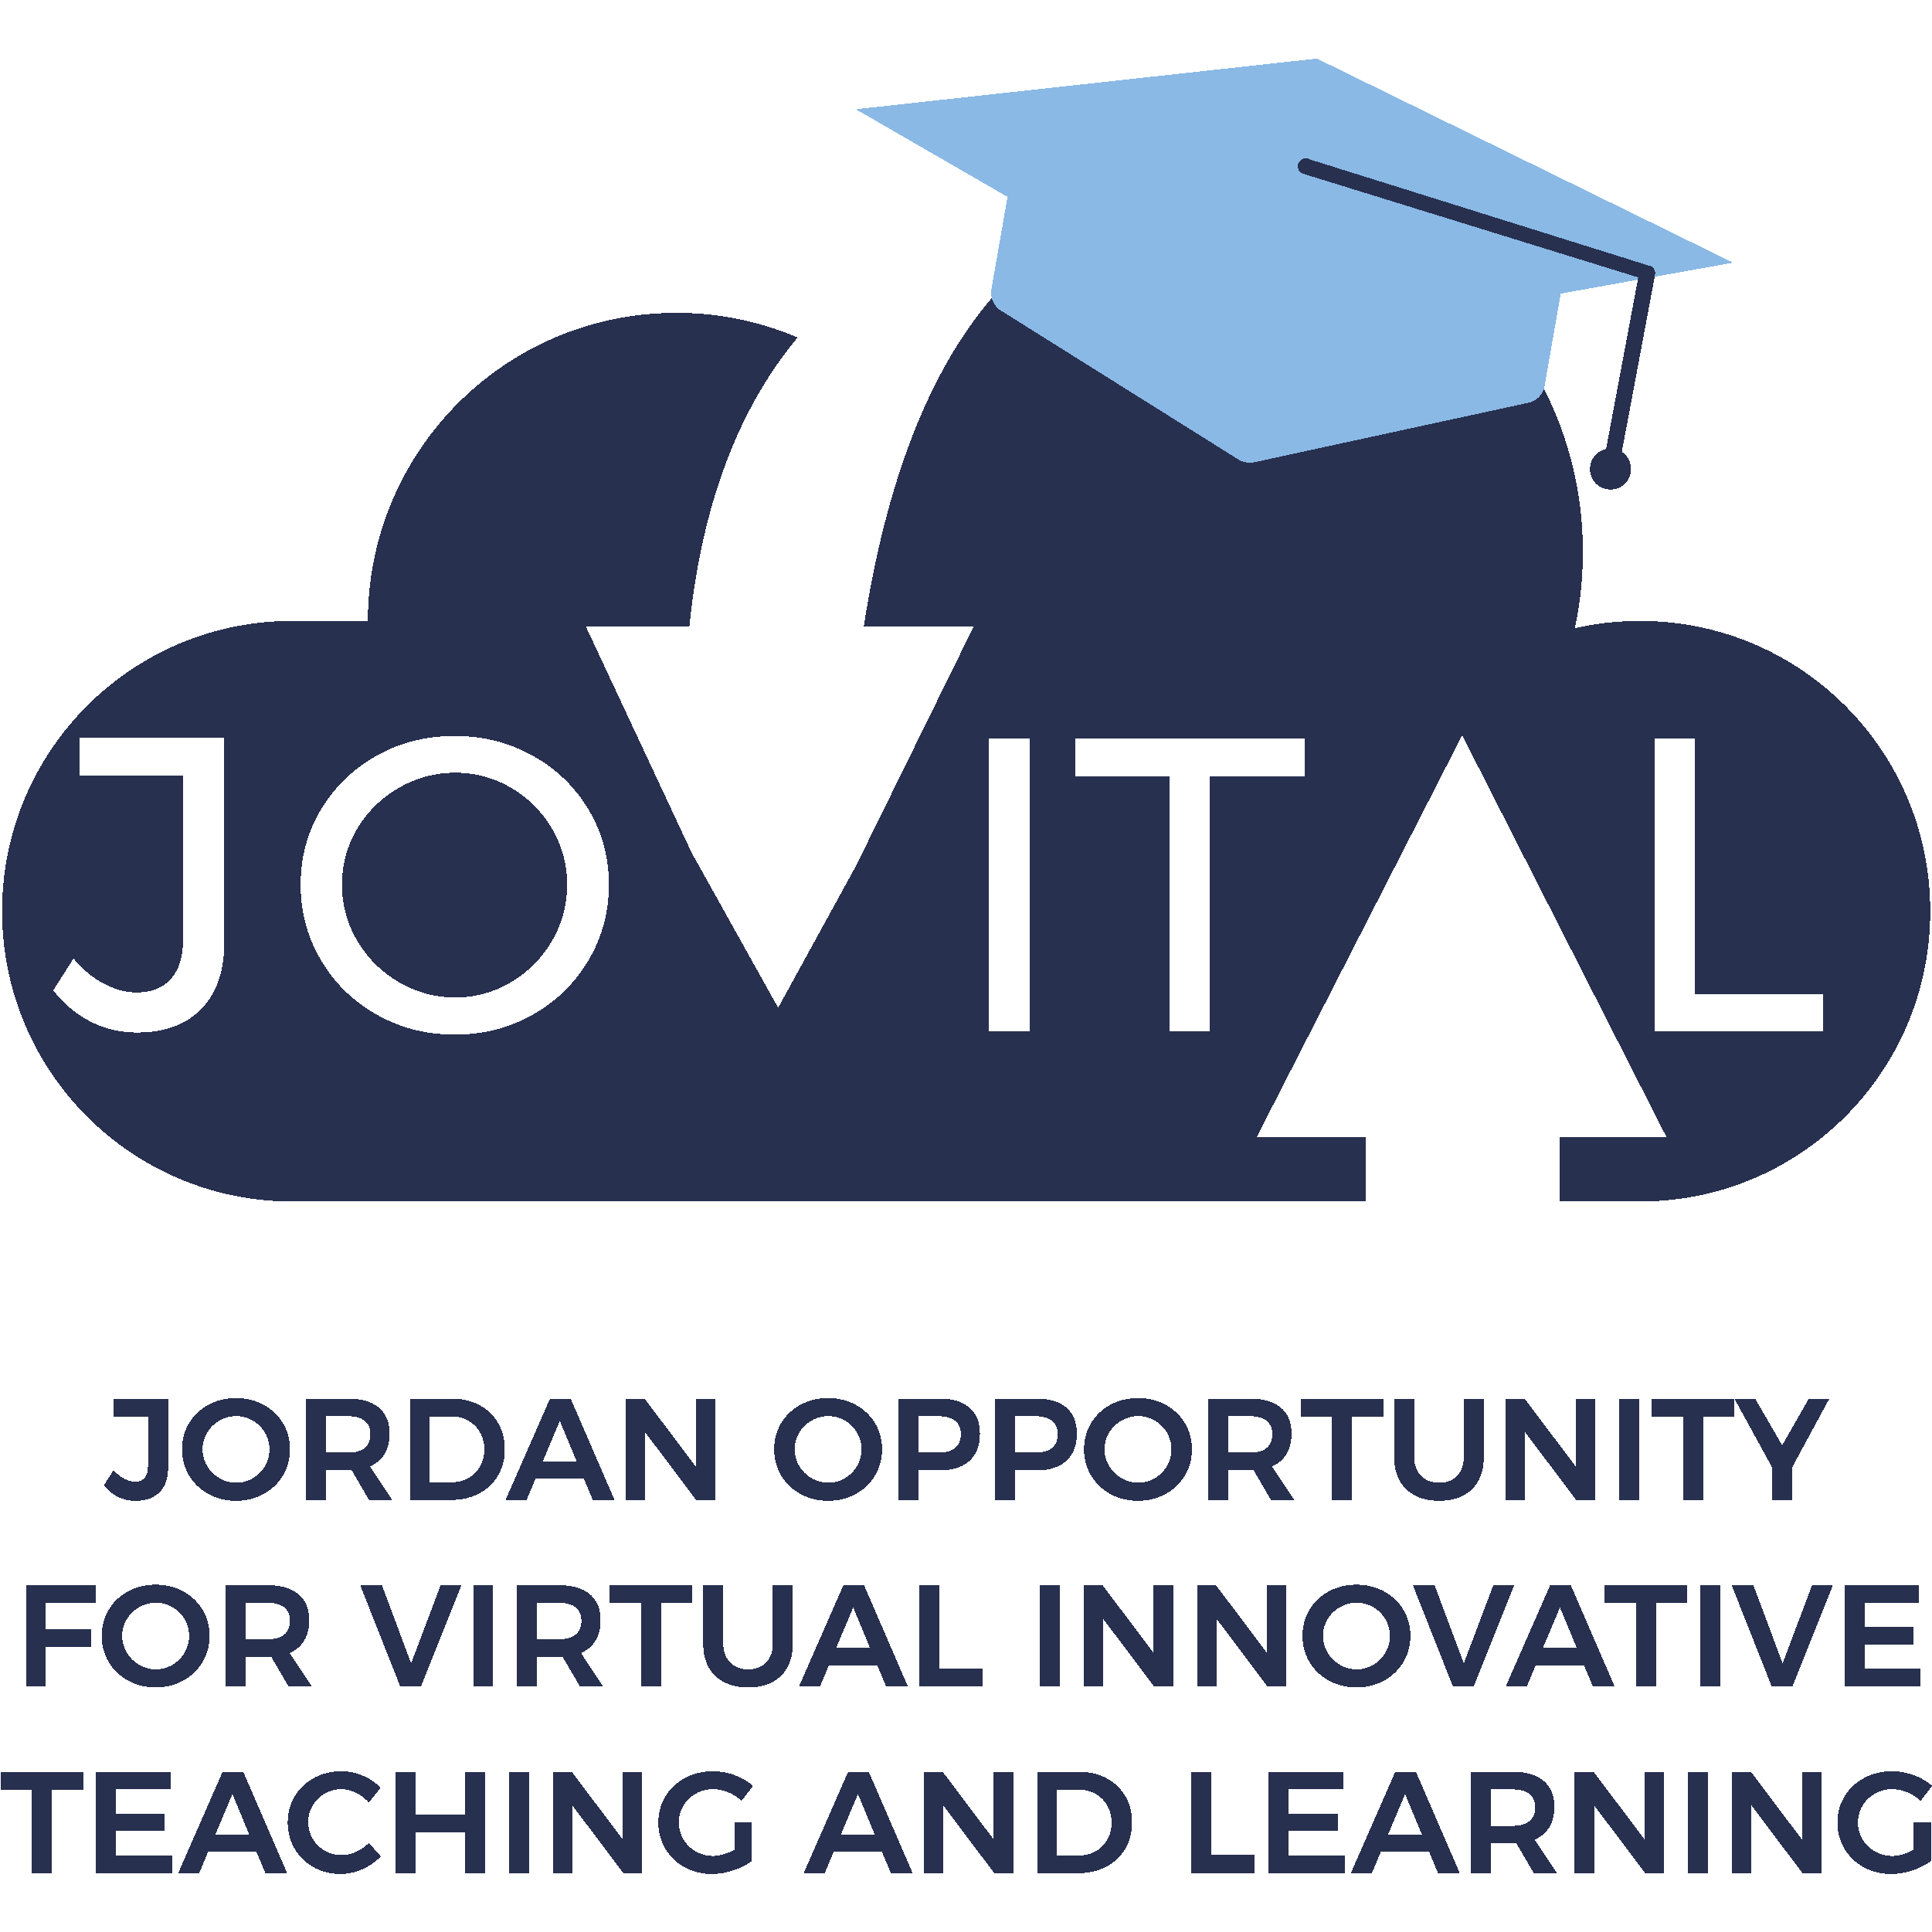 JOVITAL, Jordan opportunity for virtual innovative teaching and learning